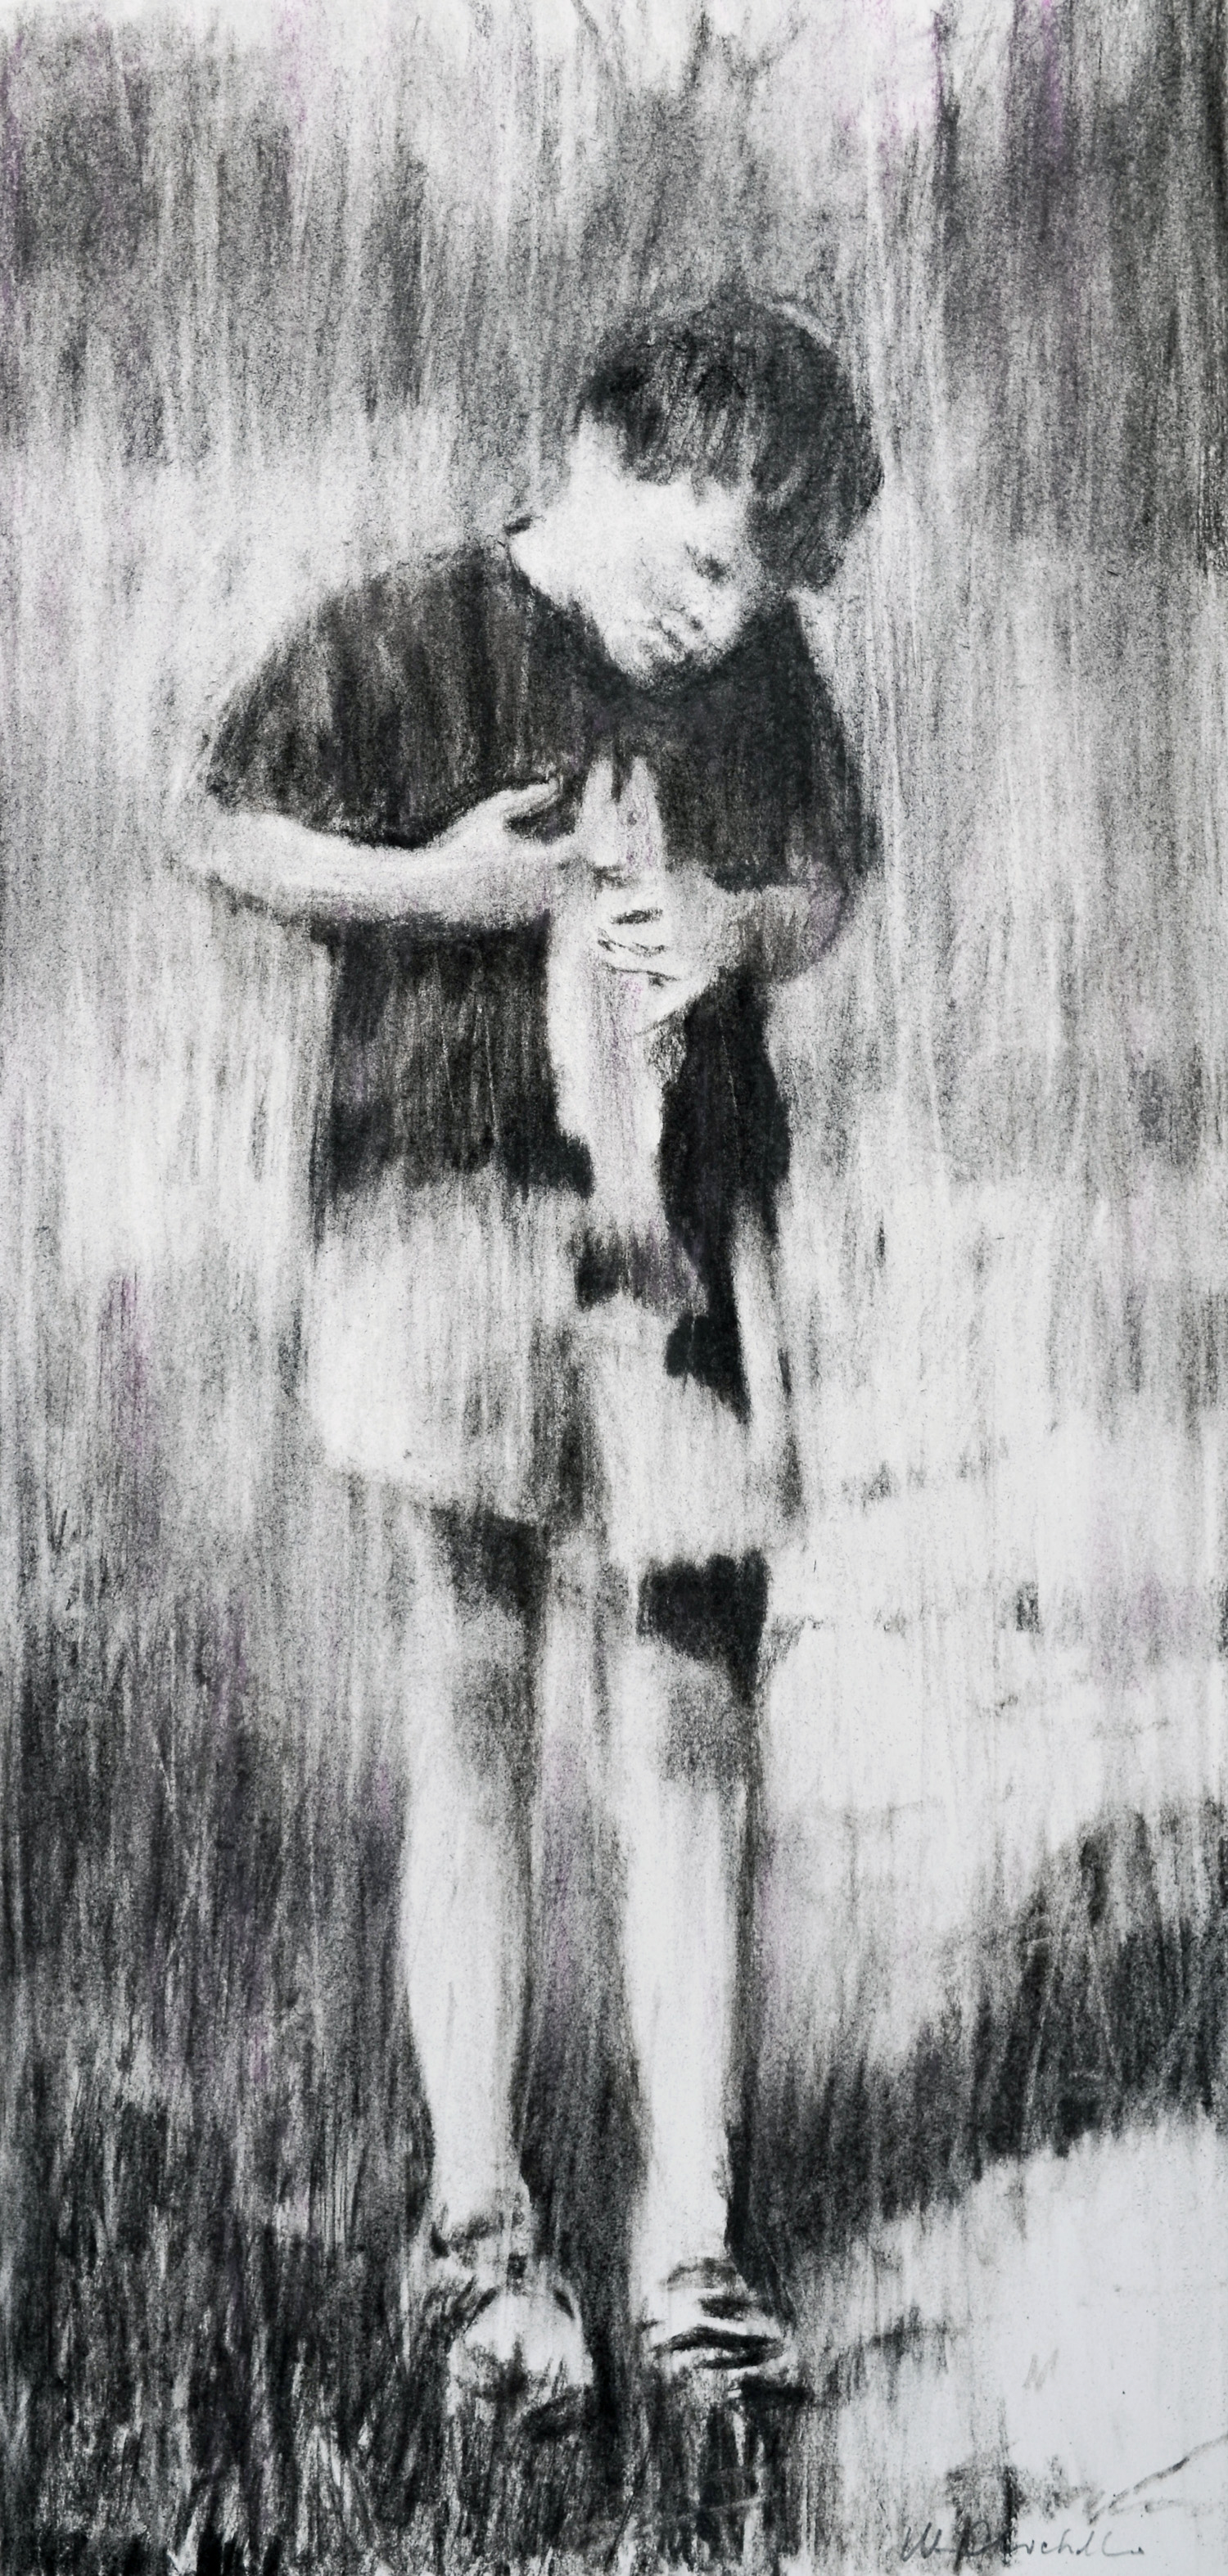 """Boy with Trout,William Chickillo, 11"""" x 22 1/2"""" charcoal drawing"""